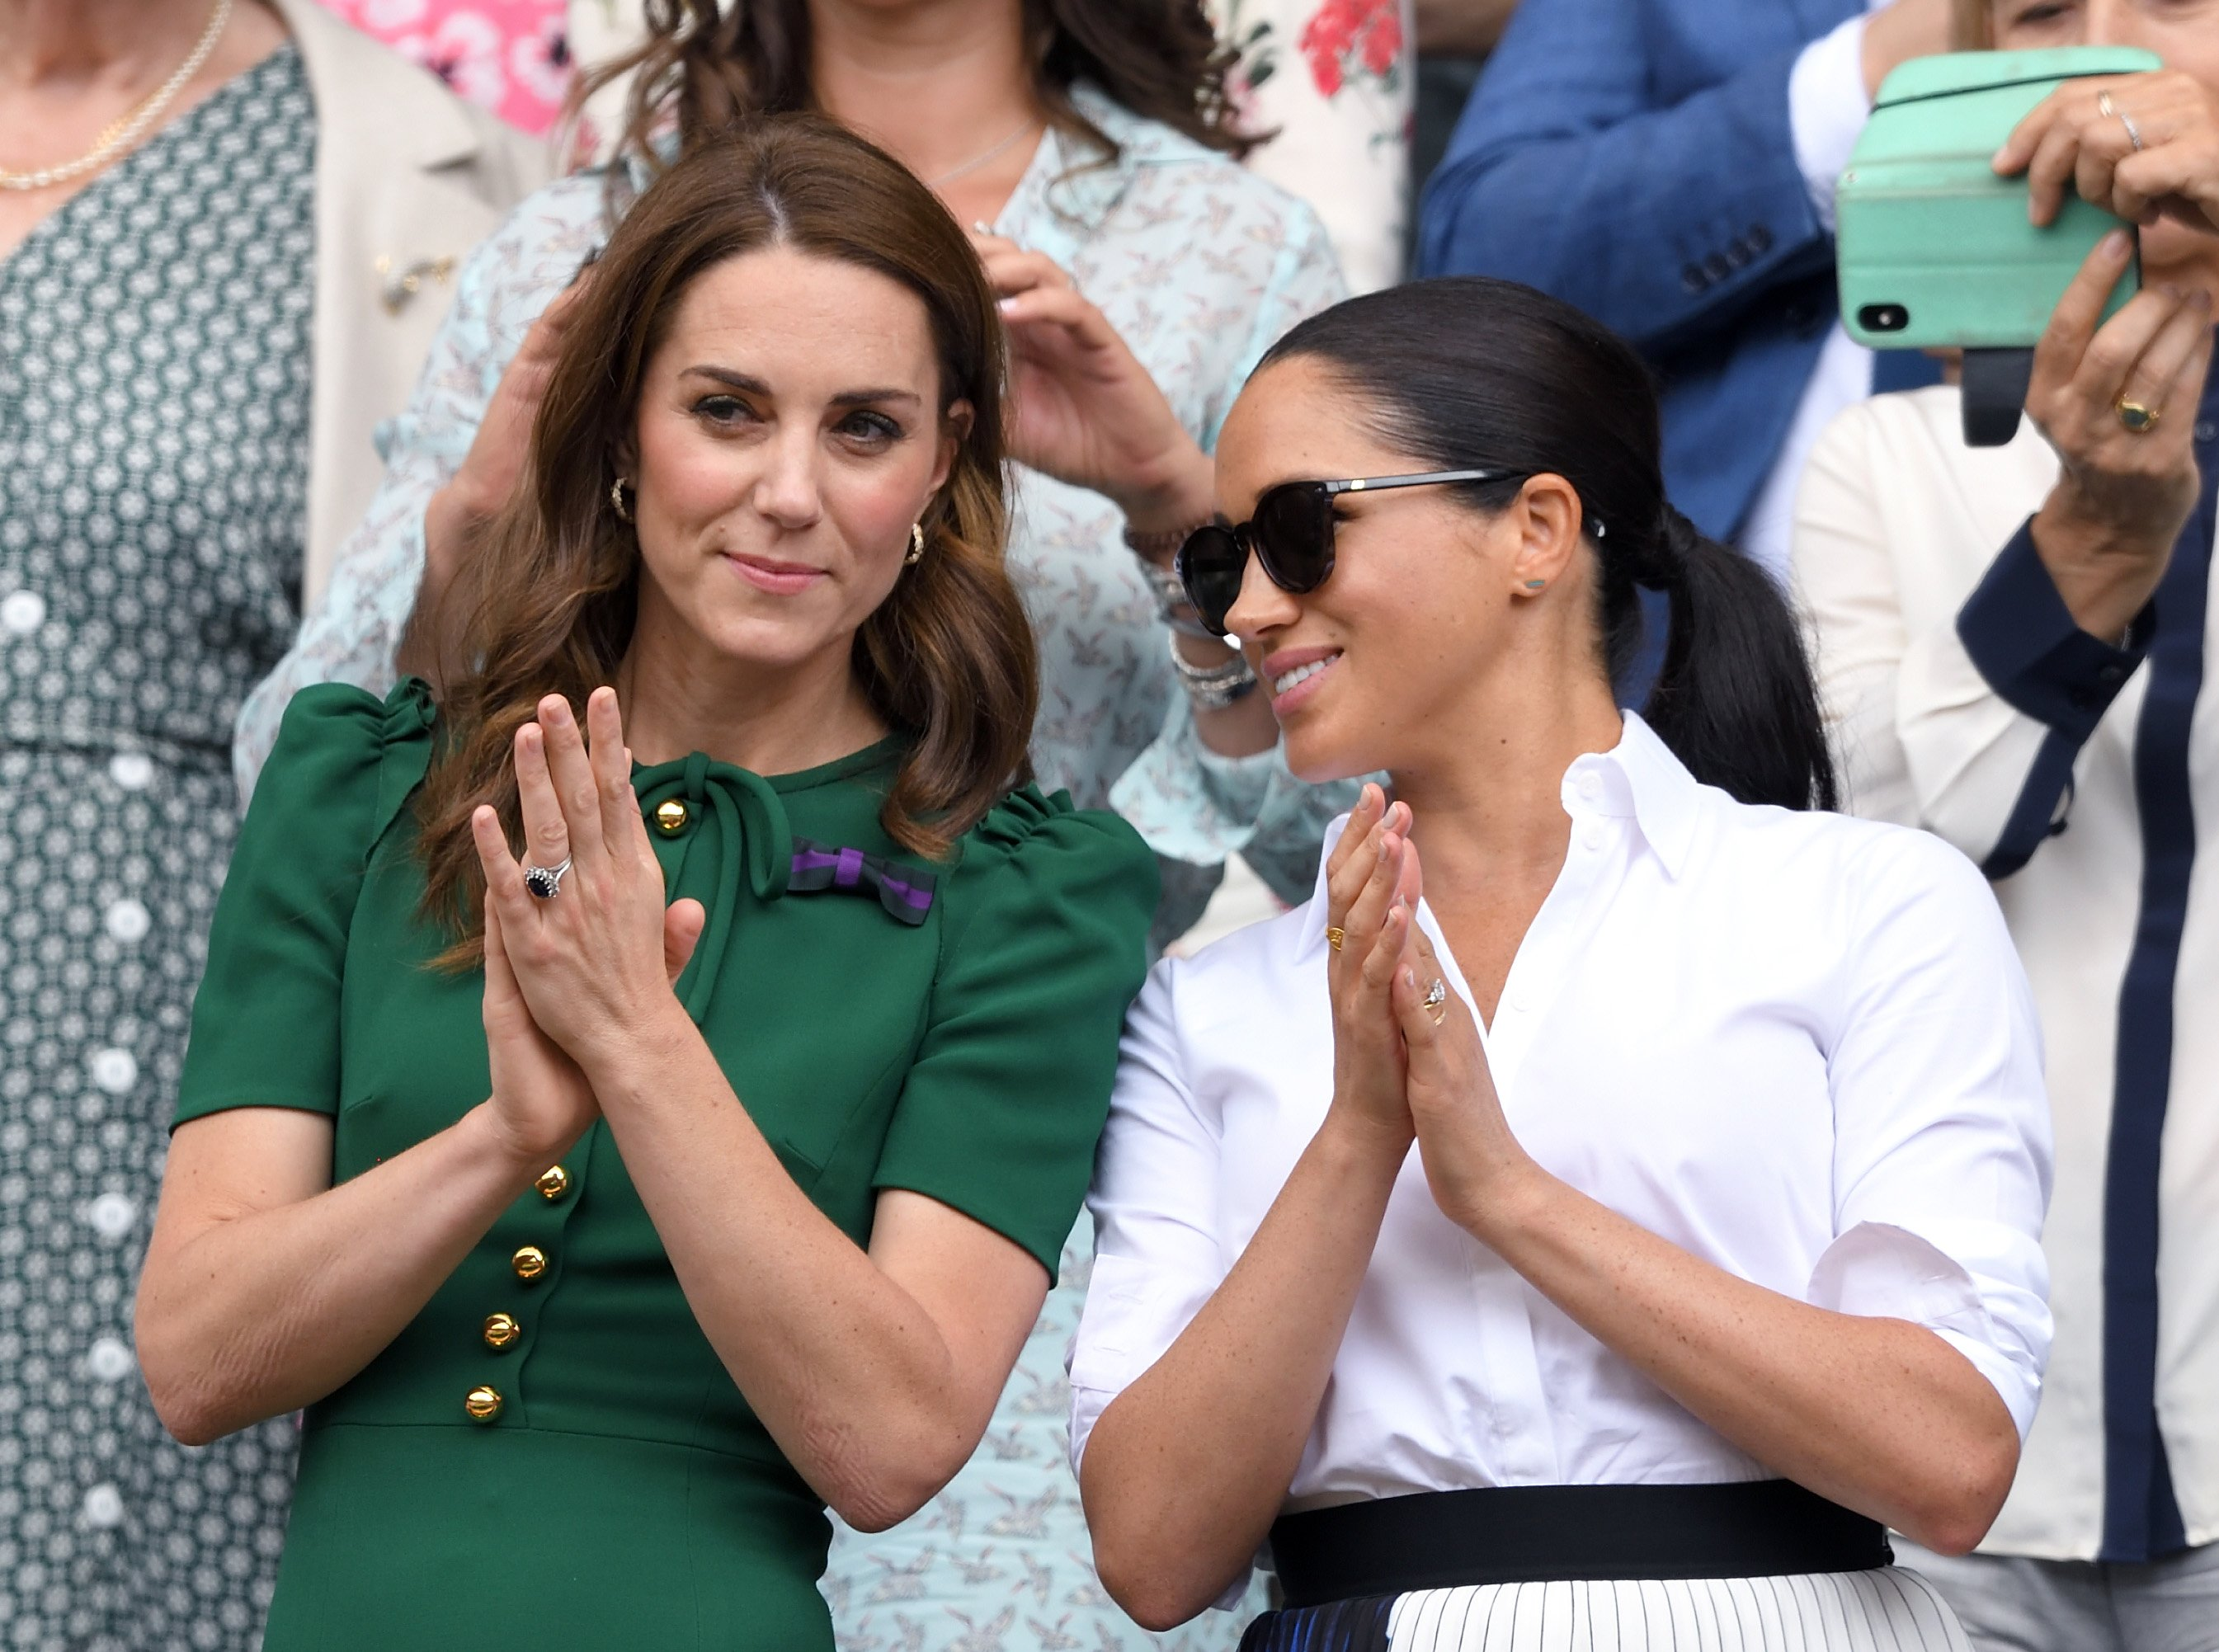 Duchess Kate and Duchess Meghan at Wimbledon on July 13, 2019 | Photo: Getty Images